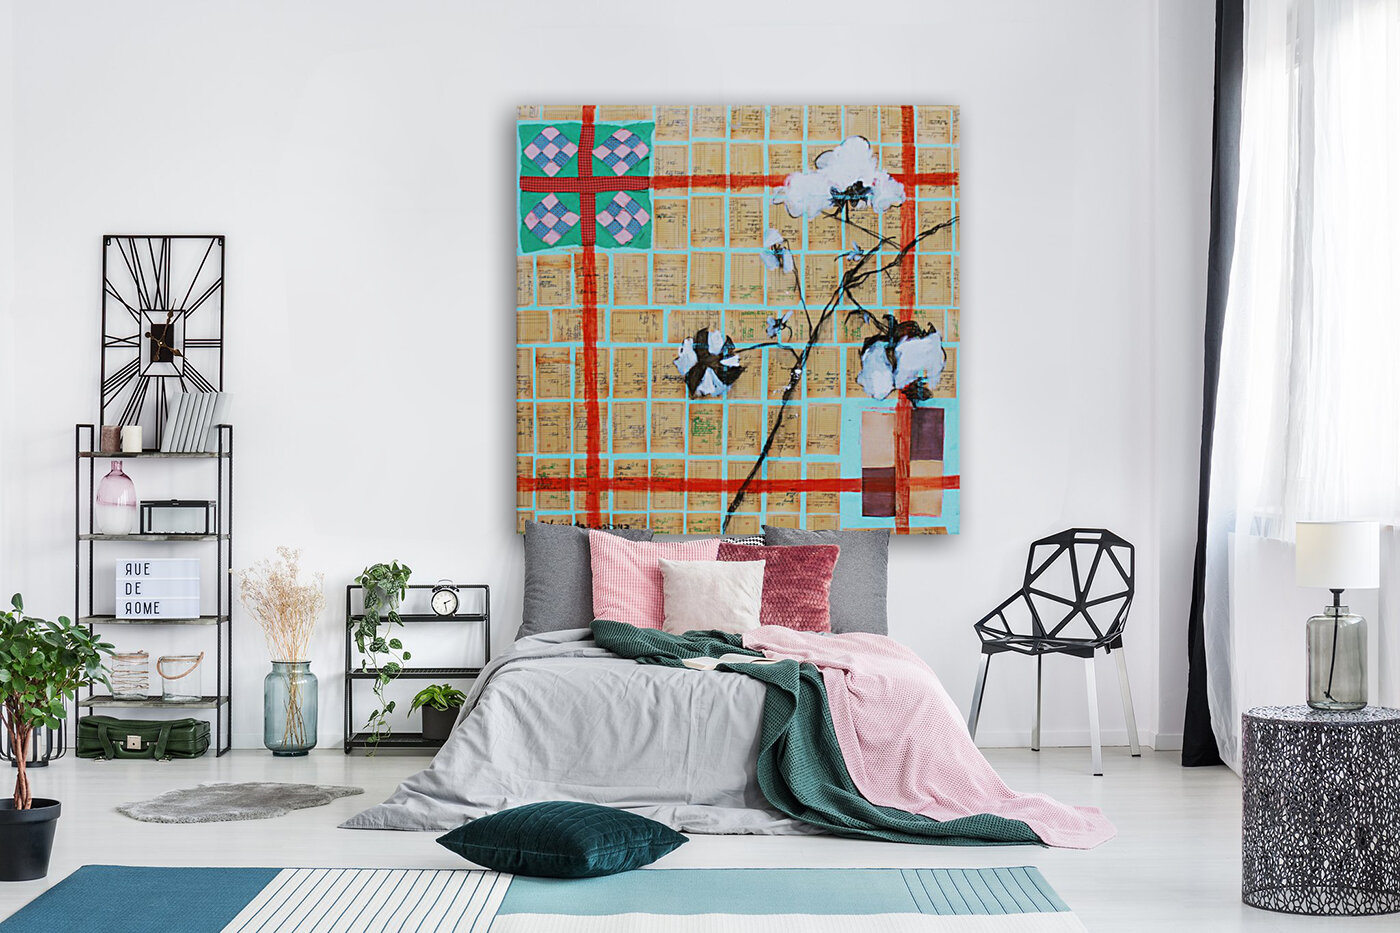 Louisiana Quilt with Cotton  and Vintage Company Store Receipts  Art